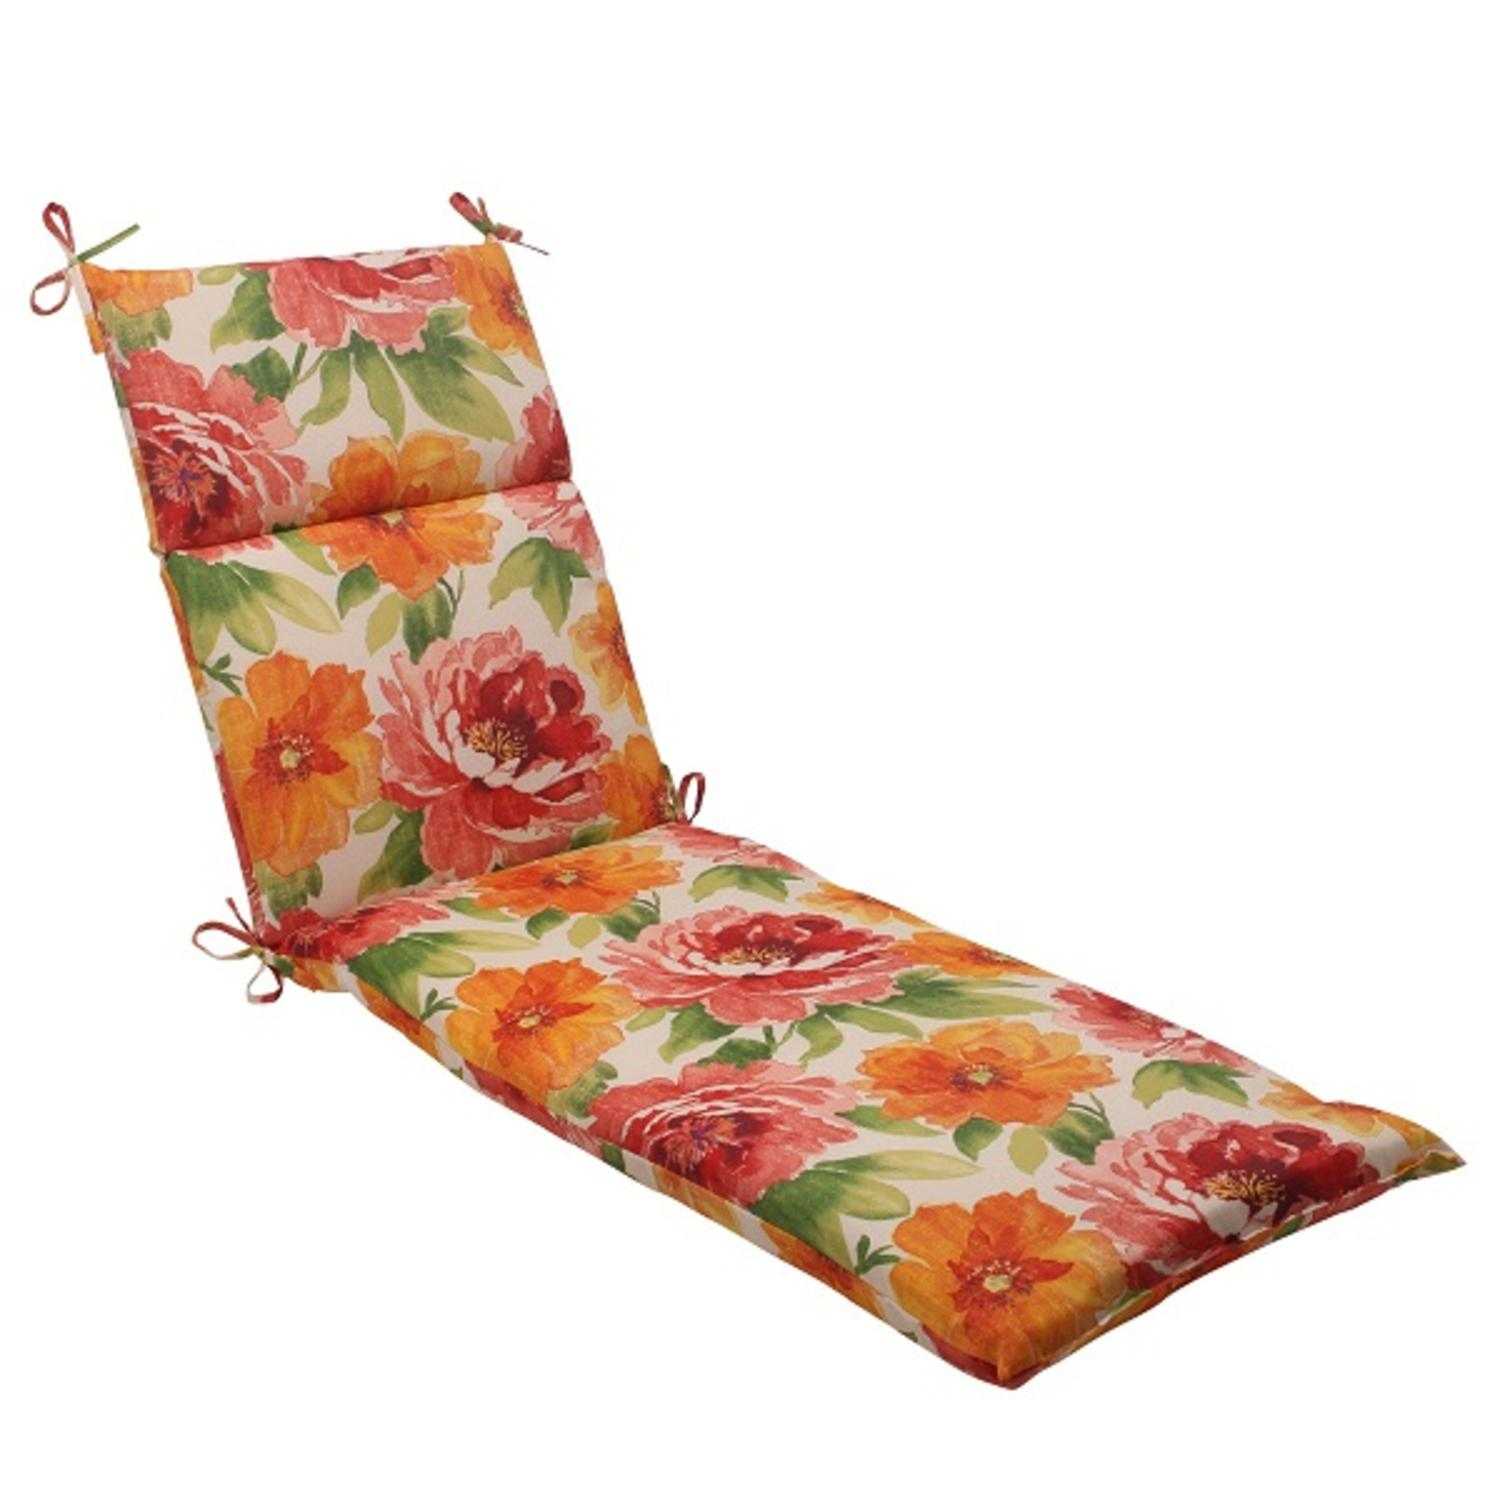 "72.5"" White Floral Splash Outdoor Patio Chaise Lounge Cushion with Ties"